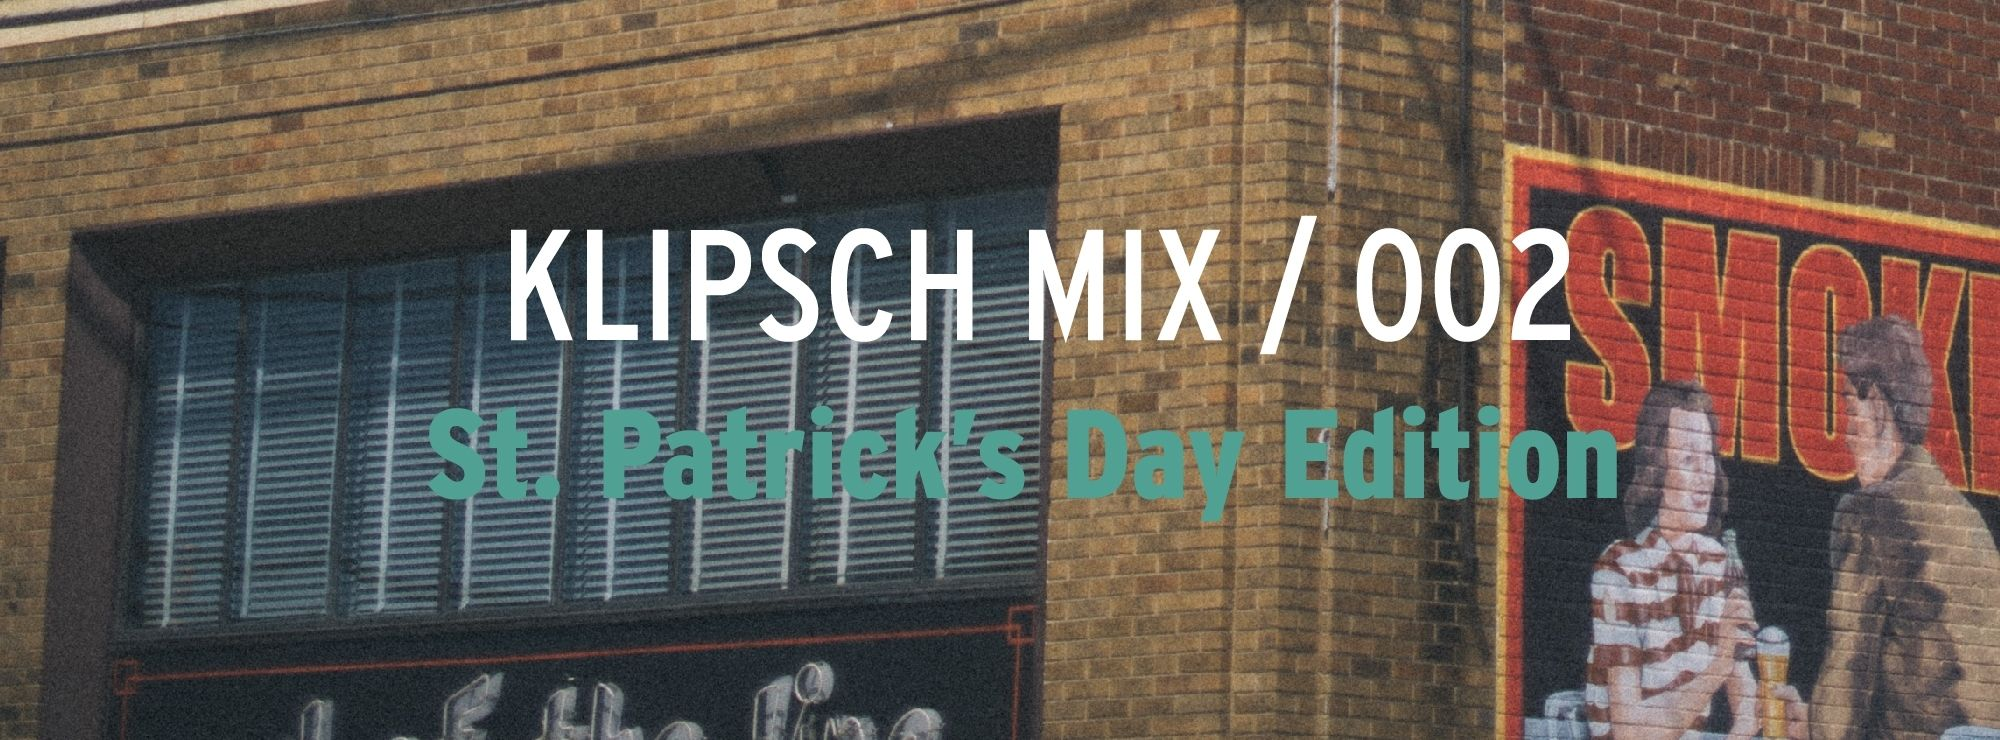 Klipsch St Patty's Day Edition